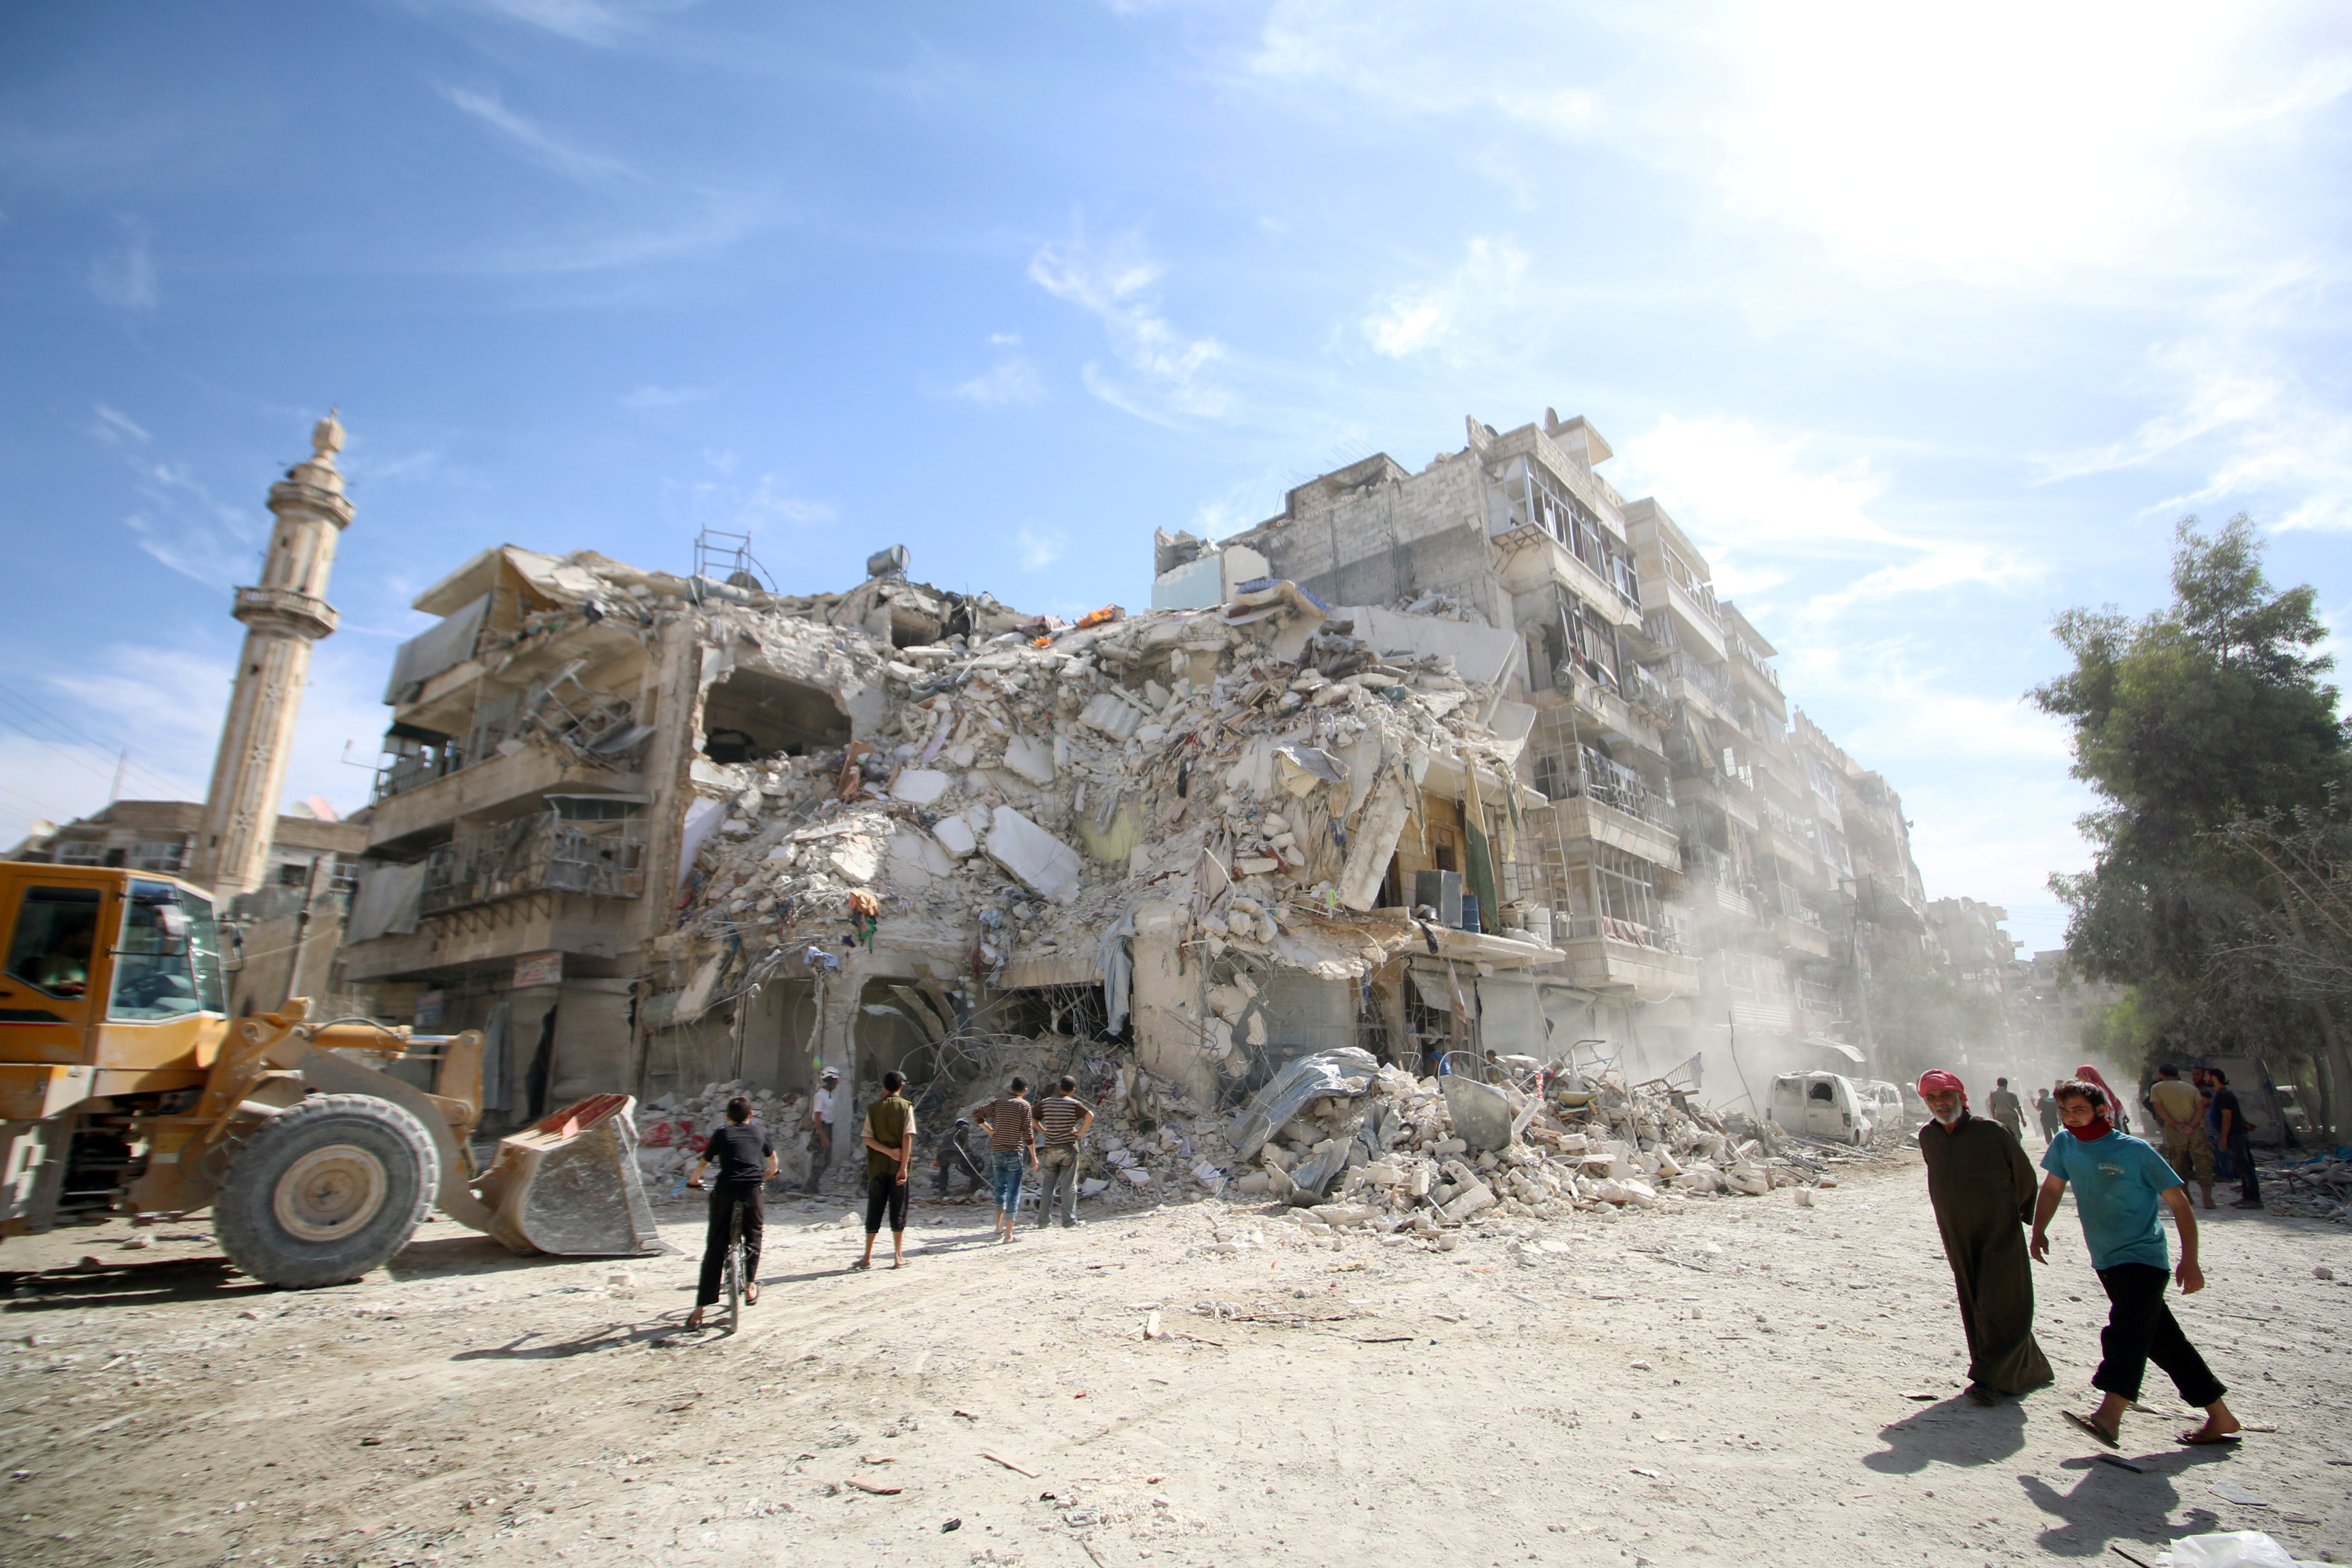 People inspect a site destroyed by an air strike in the rebel-held al-Qaterji neighborhood of Aleppo on Oct. 17. Photo by Abdalrhman Ismail/Reuters